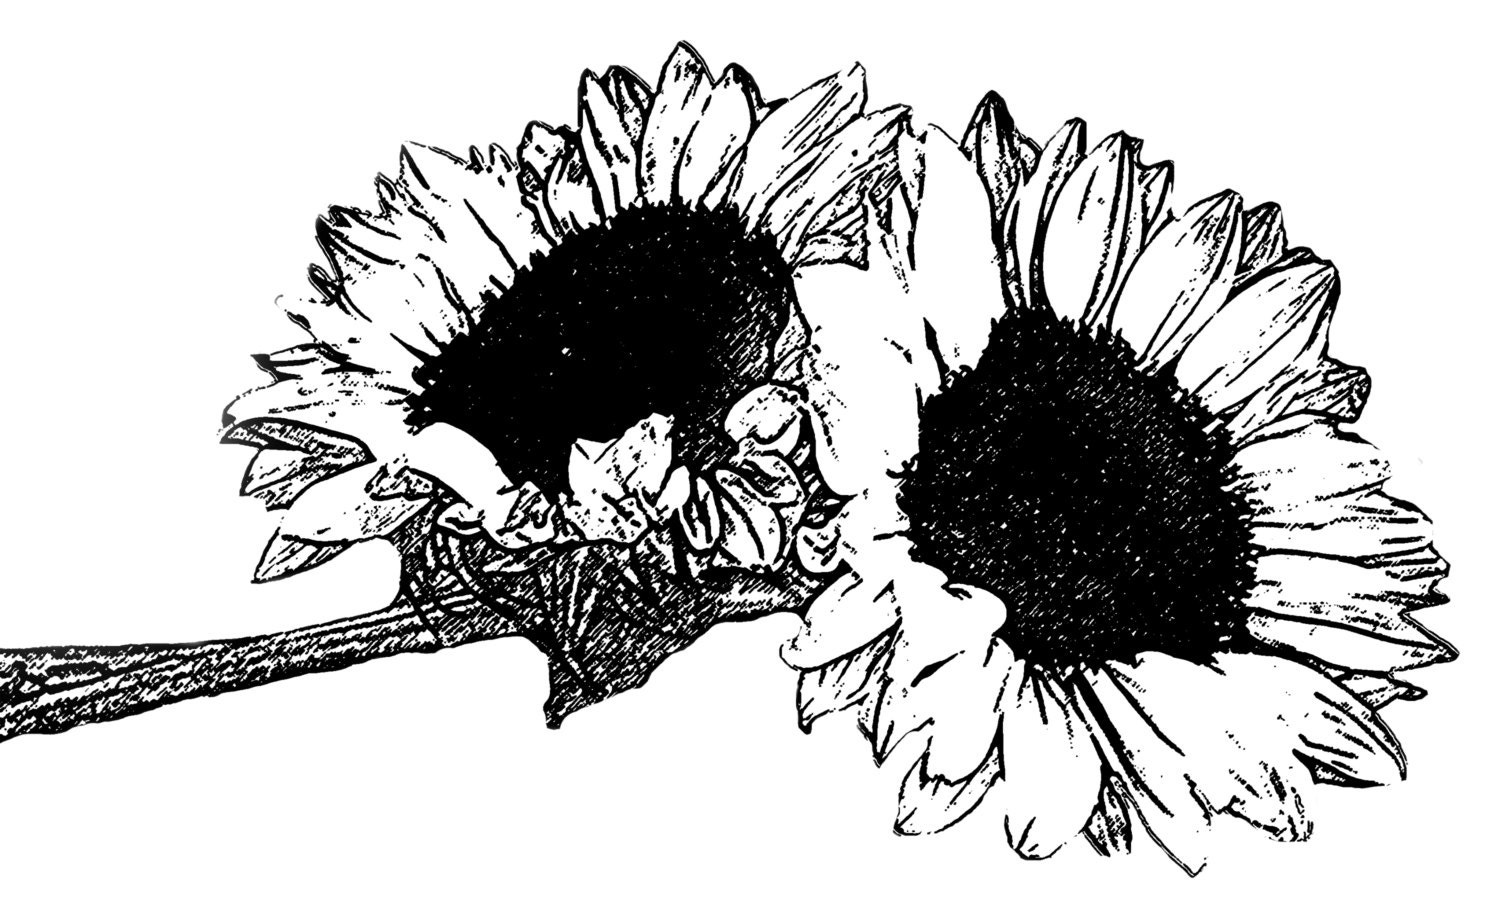 DIGITAL STAMP sunflower 01 black  for Clipart Sunflower Black And White  545xkb